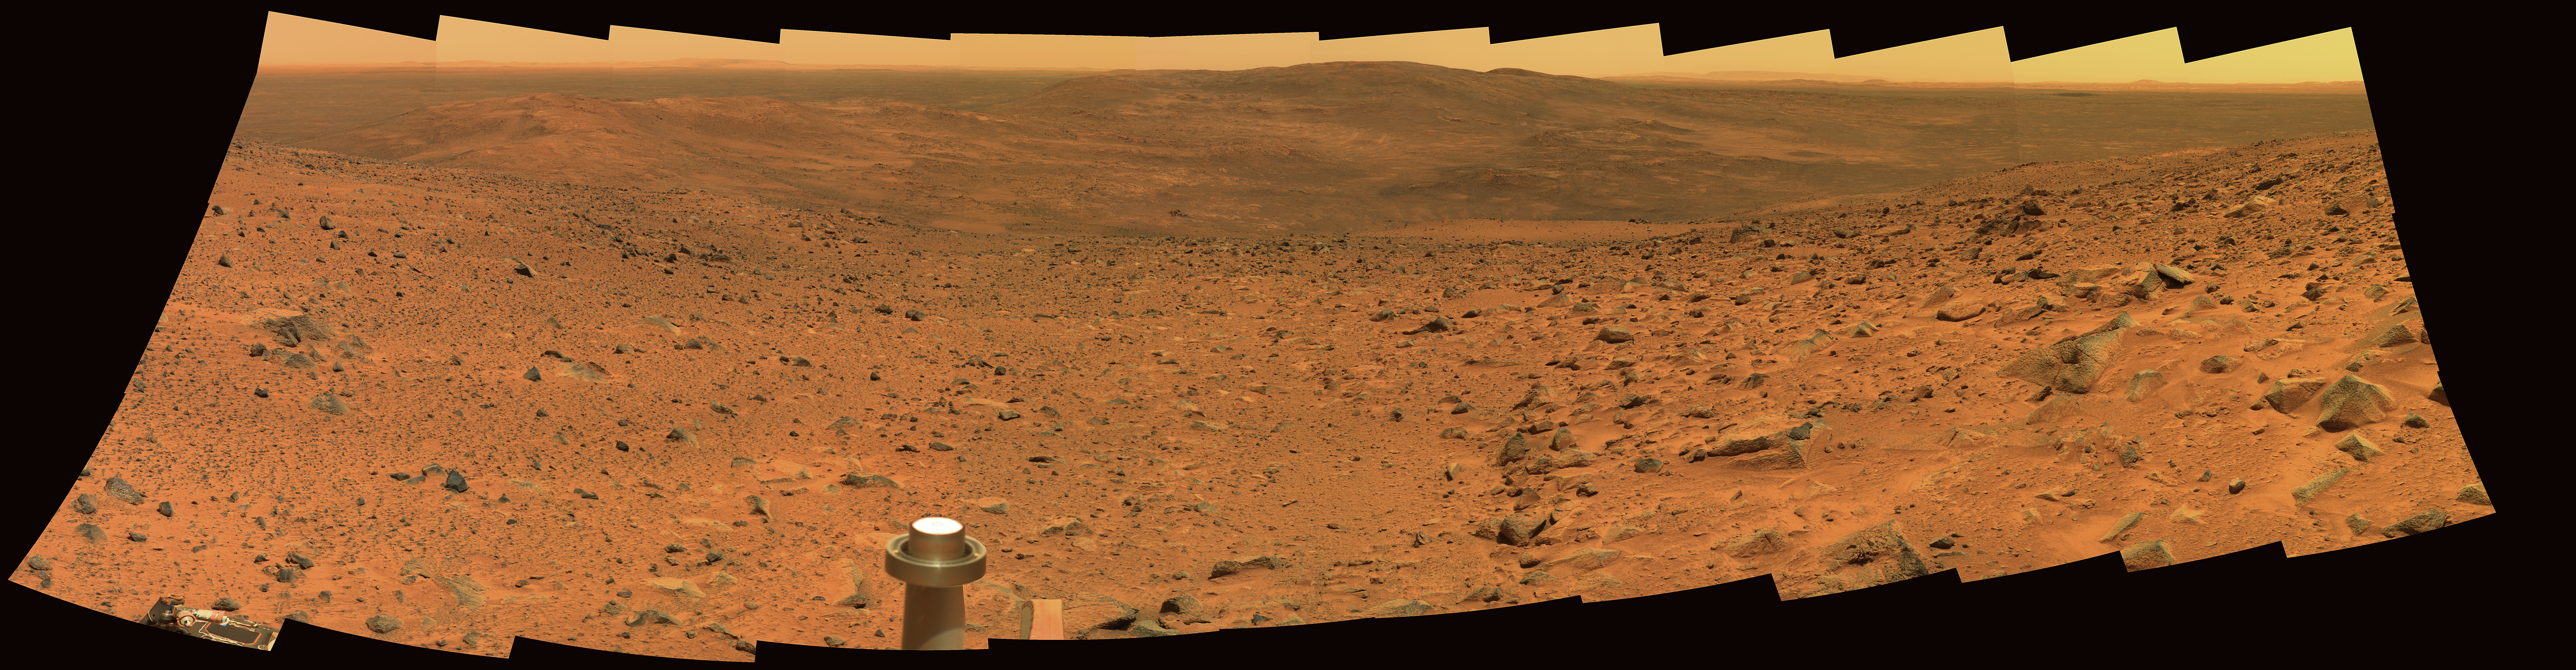 A View of McCool Hill from the Husband Hill at Columbia Hills, Mars. Photo taken by rover Spirit. Photo: NASA.